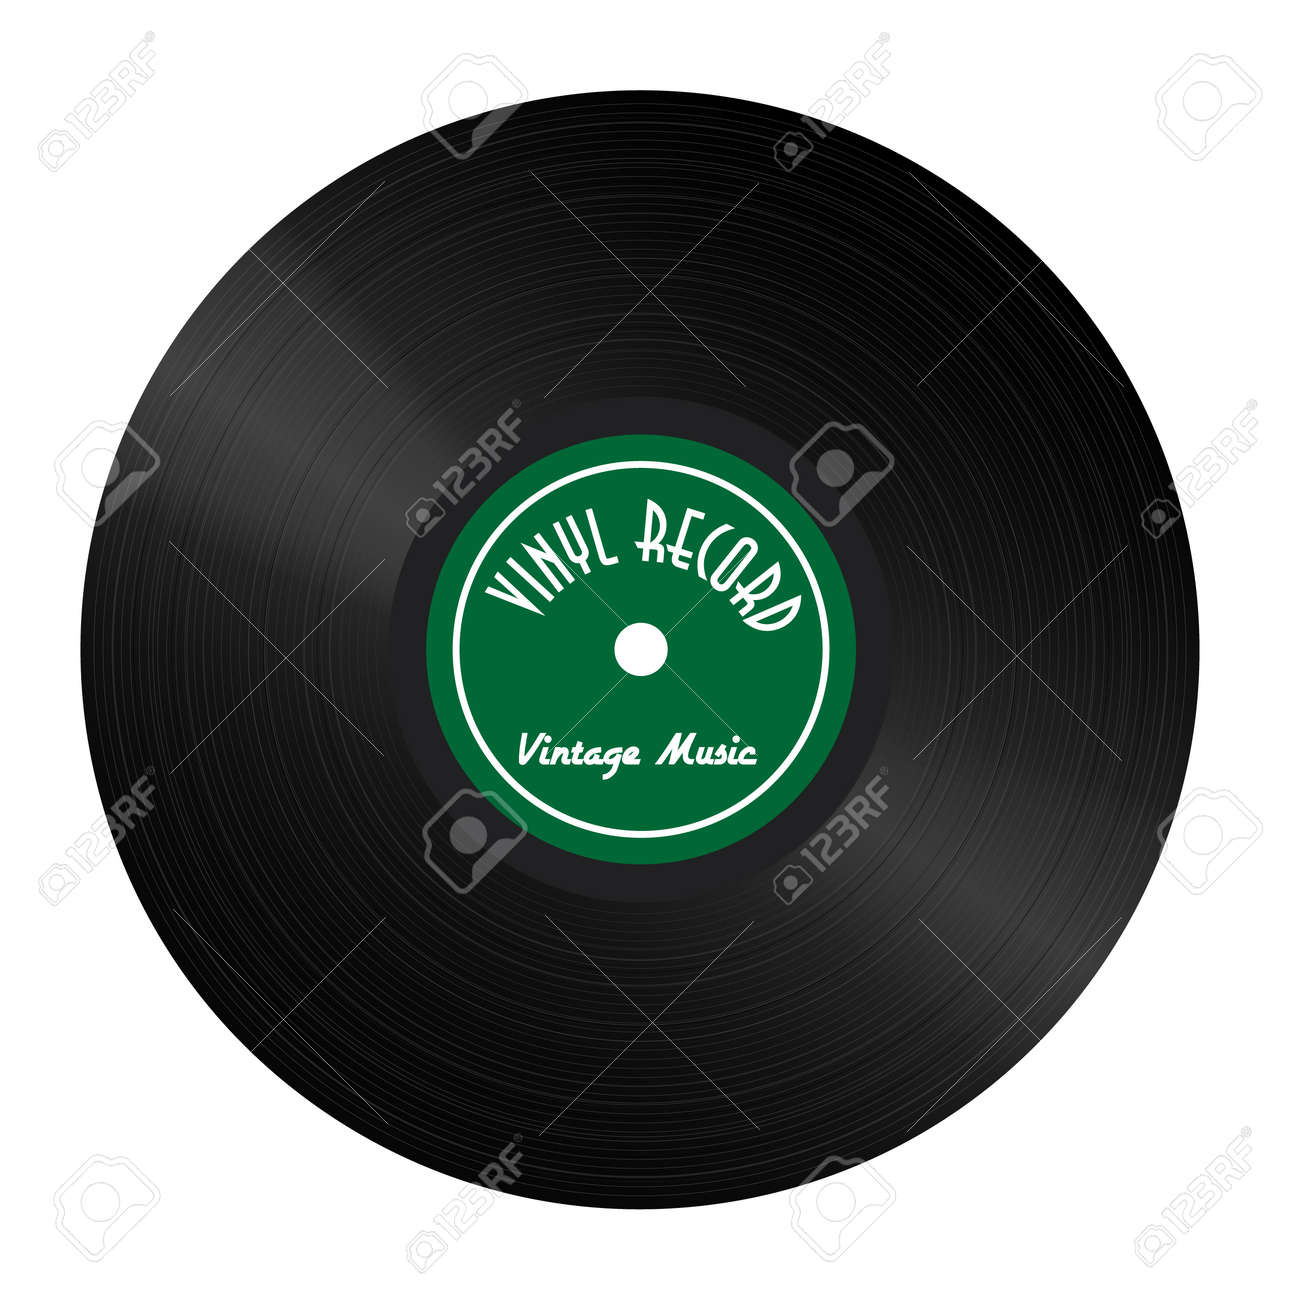 Vintage Vinyl Record with green label and highlights